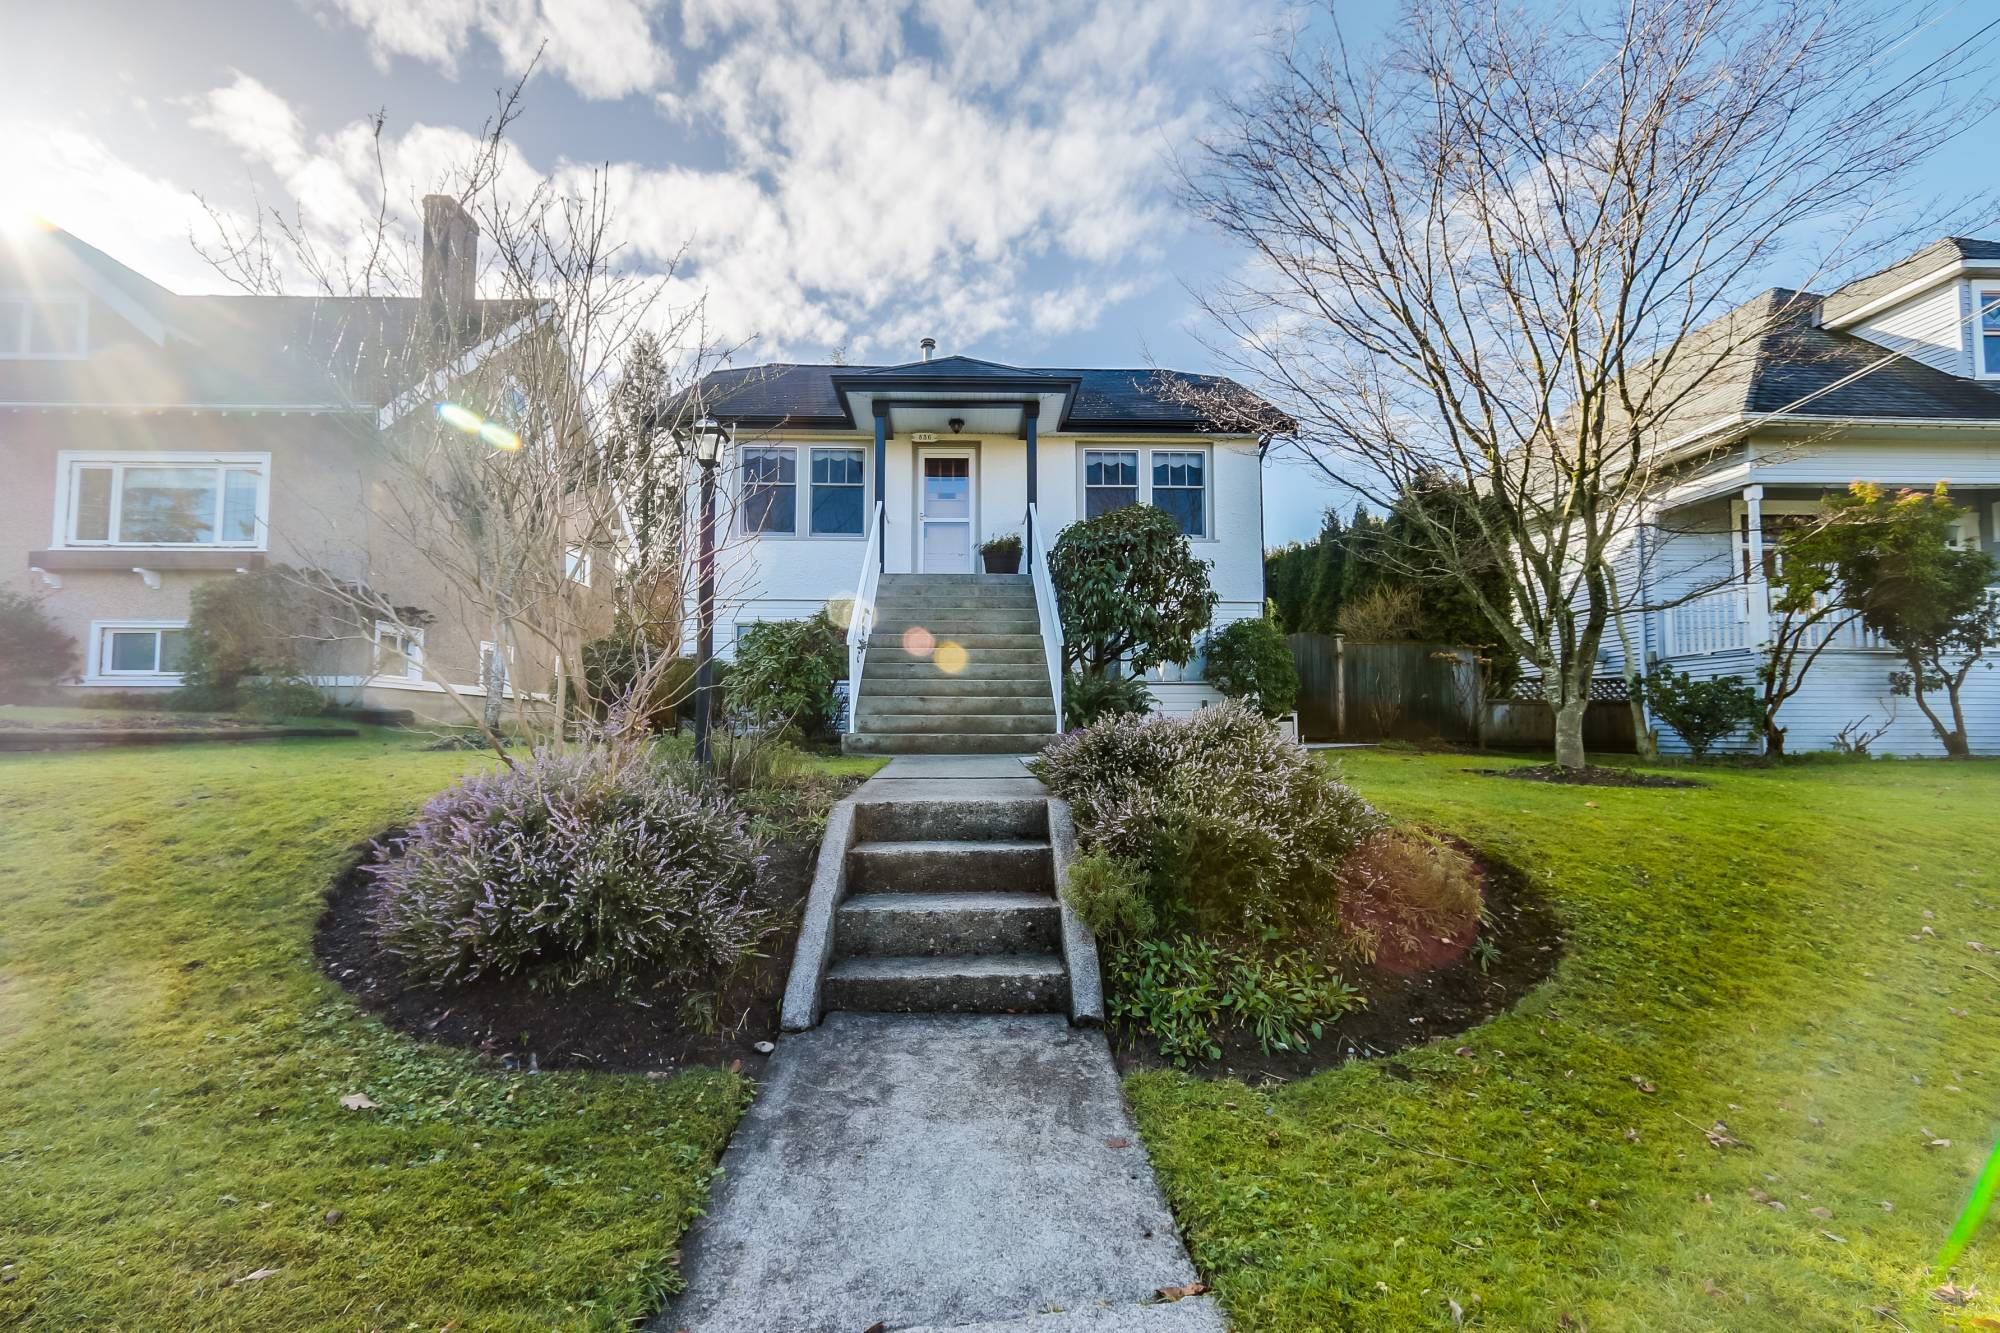 new westminster mature singles Single detached dwellings and in a cultivated park with many horticultural features and mature of new westminster queen's park preschool new westminster.